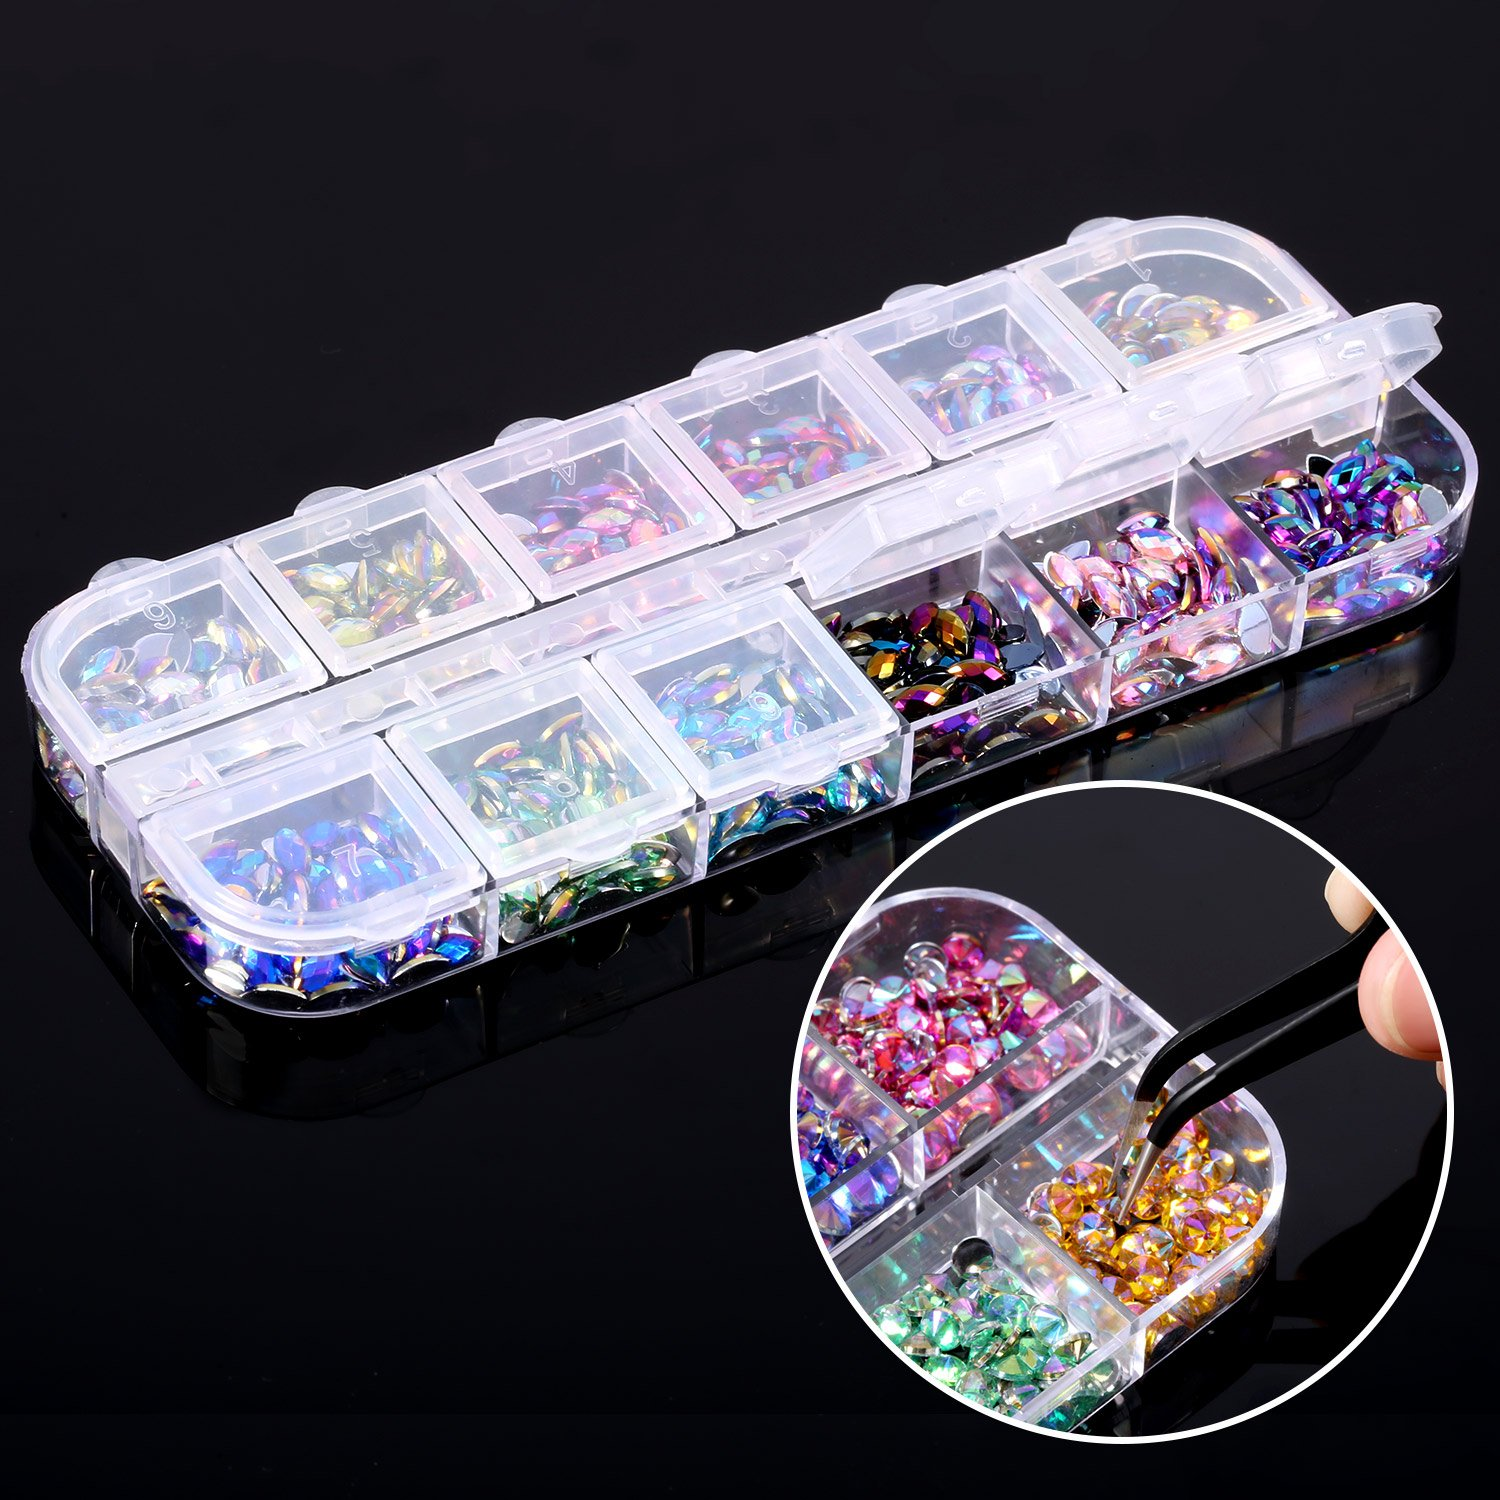 Bememo 4300 Pieces (4 Boxes) Nail Art Rhinestones Kit Nail Rhinestones with 1 Piece 1 Pick up Tweezers, Multicolor Nail Studs Horse Eye Rhinestones for Nail Art Decorations Supplies by Bememo (Image #7)